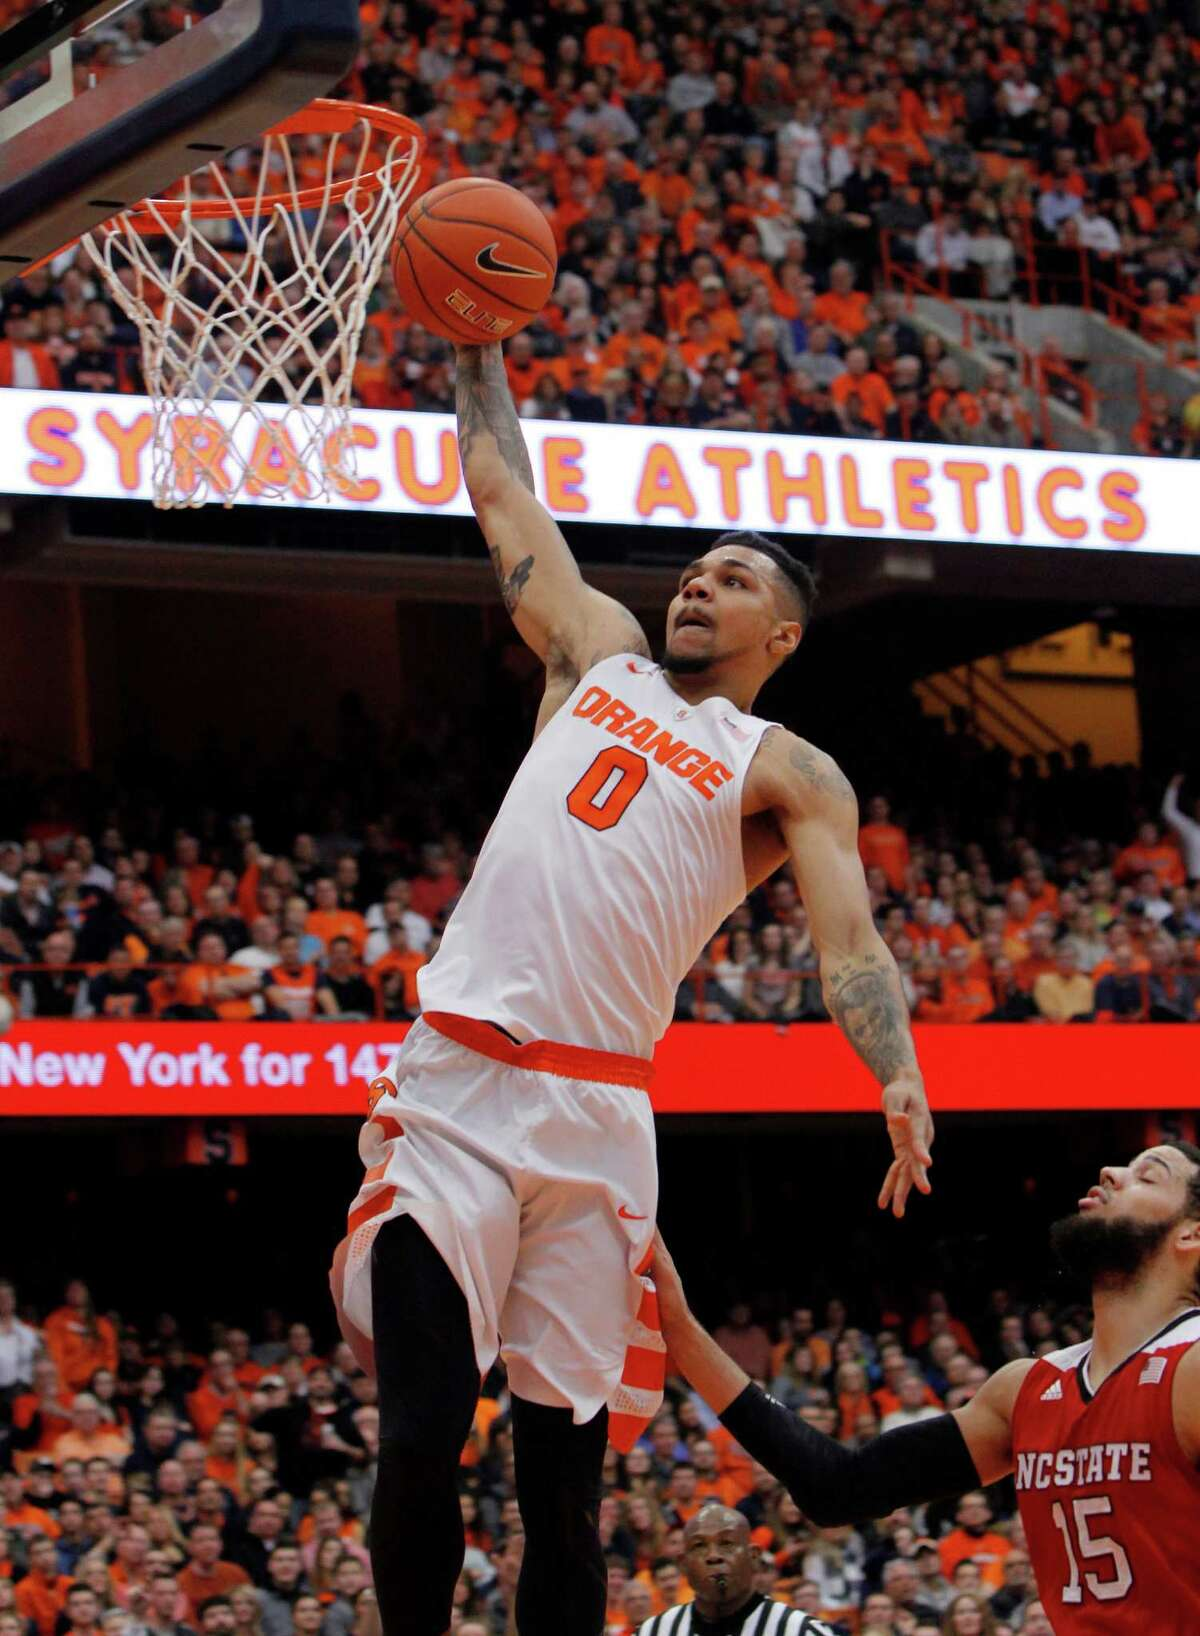 Syracuse?'s Michael Gbinije, left, dunks the ball over North Carolina State?'s Cody Martin, right, in the second half of an NCAA college basketball game in Syracuse, N.Y., Saturday, Feb. 27, 2016. Syracuse won 75-66. (AP Photo/Nick Lisi) ORG XMIT: NYNL106